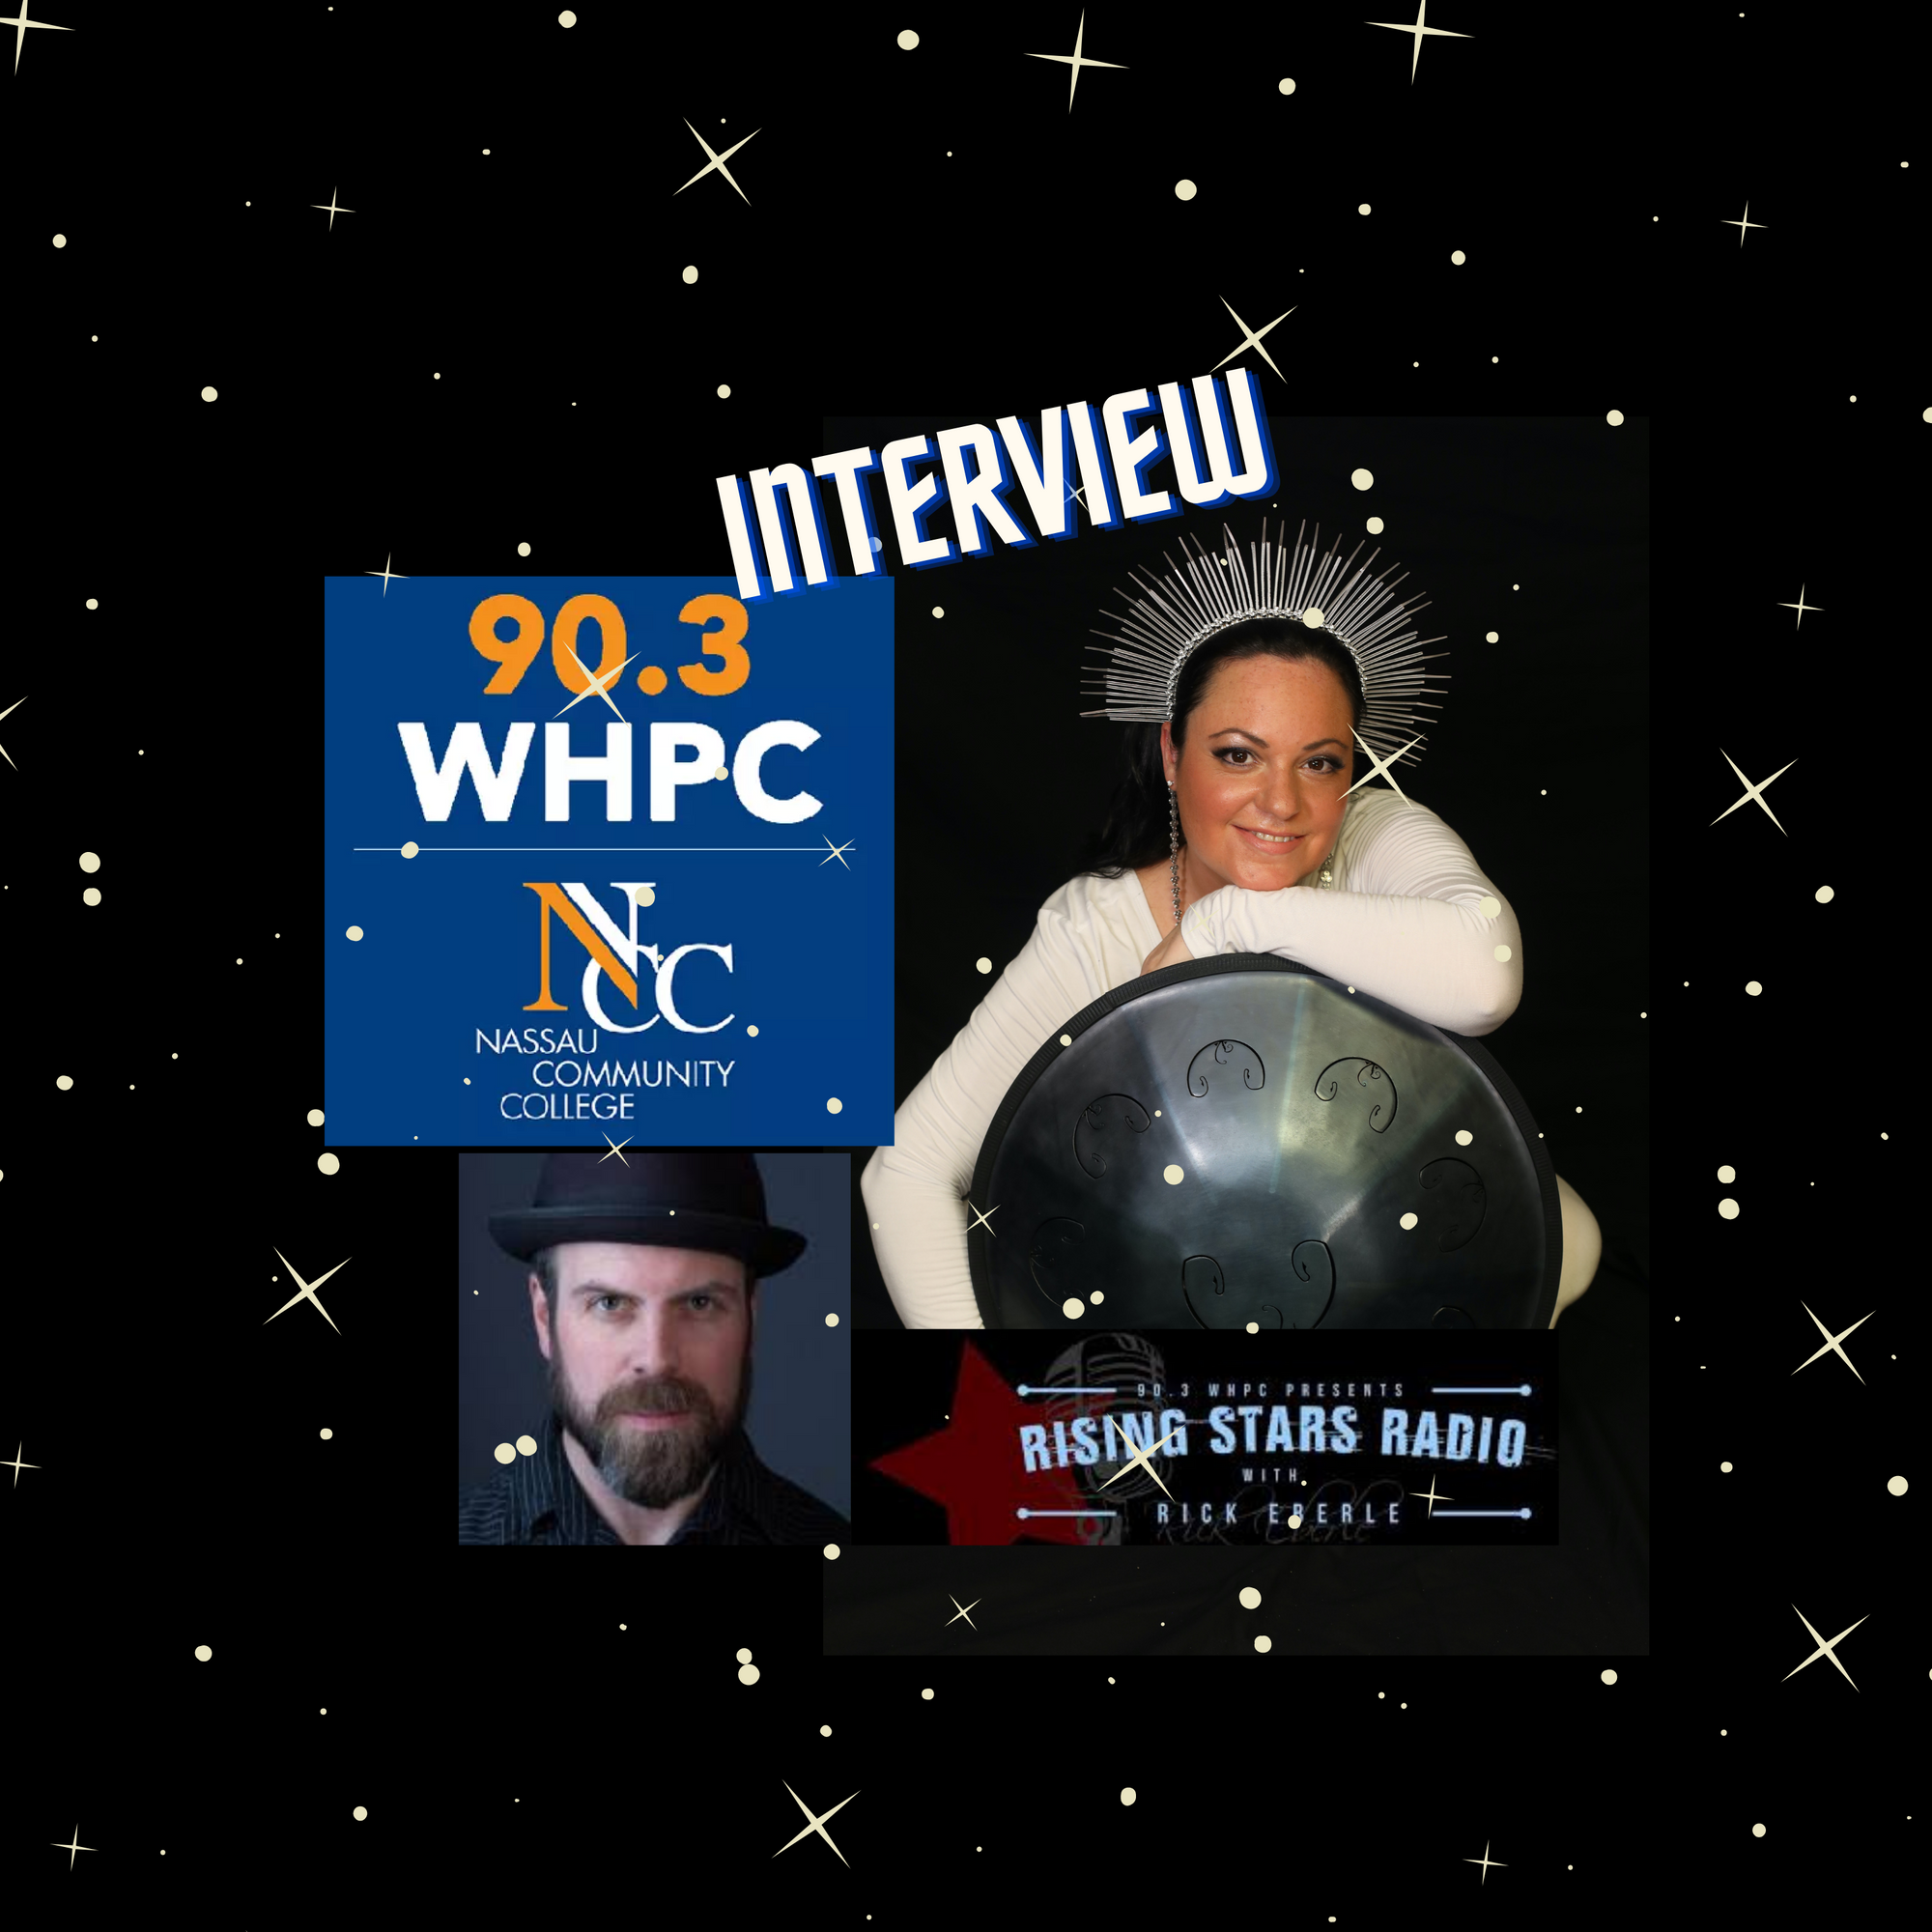 Rising Stars Radio Interview WHPC 90.3 - Tabytha Polaris